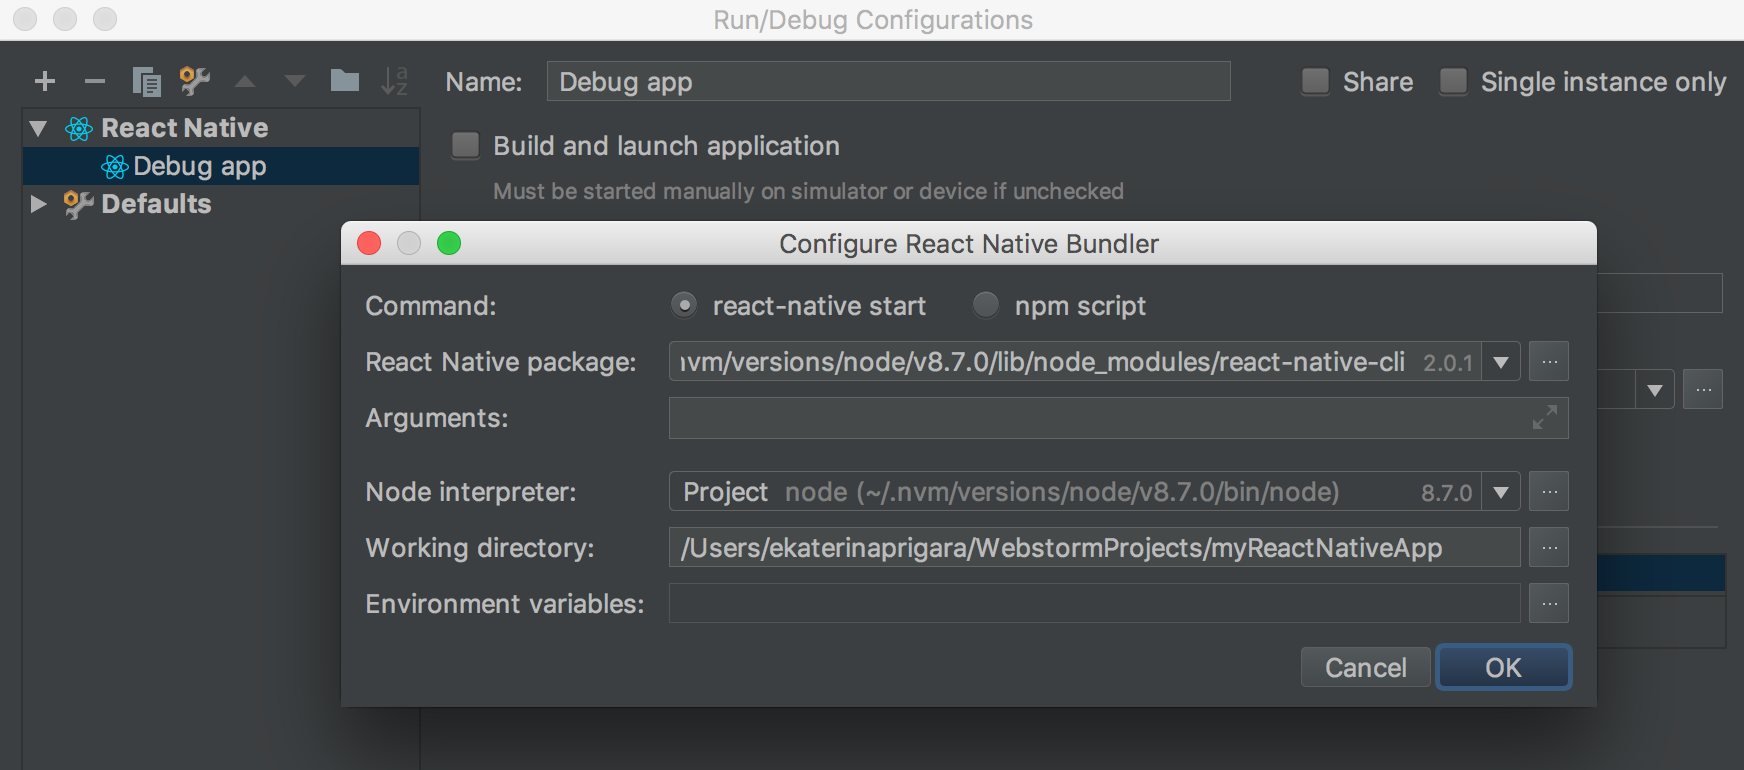 configure-react-native-bundler